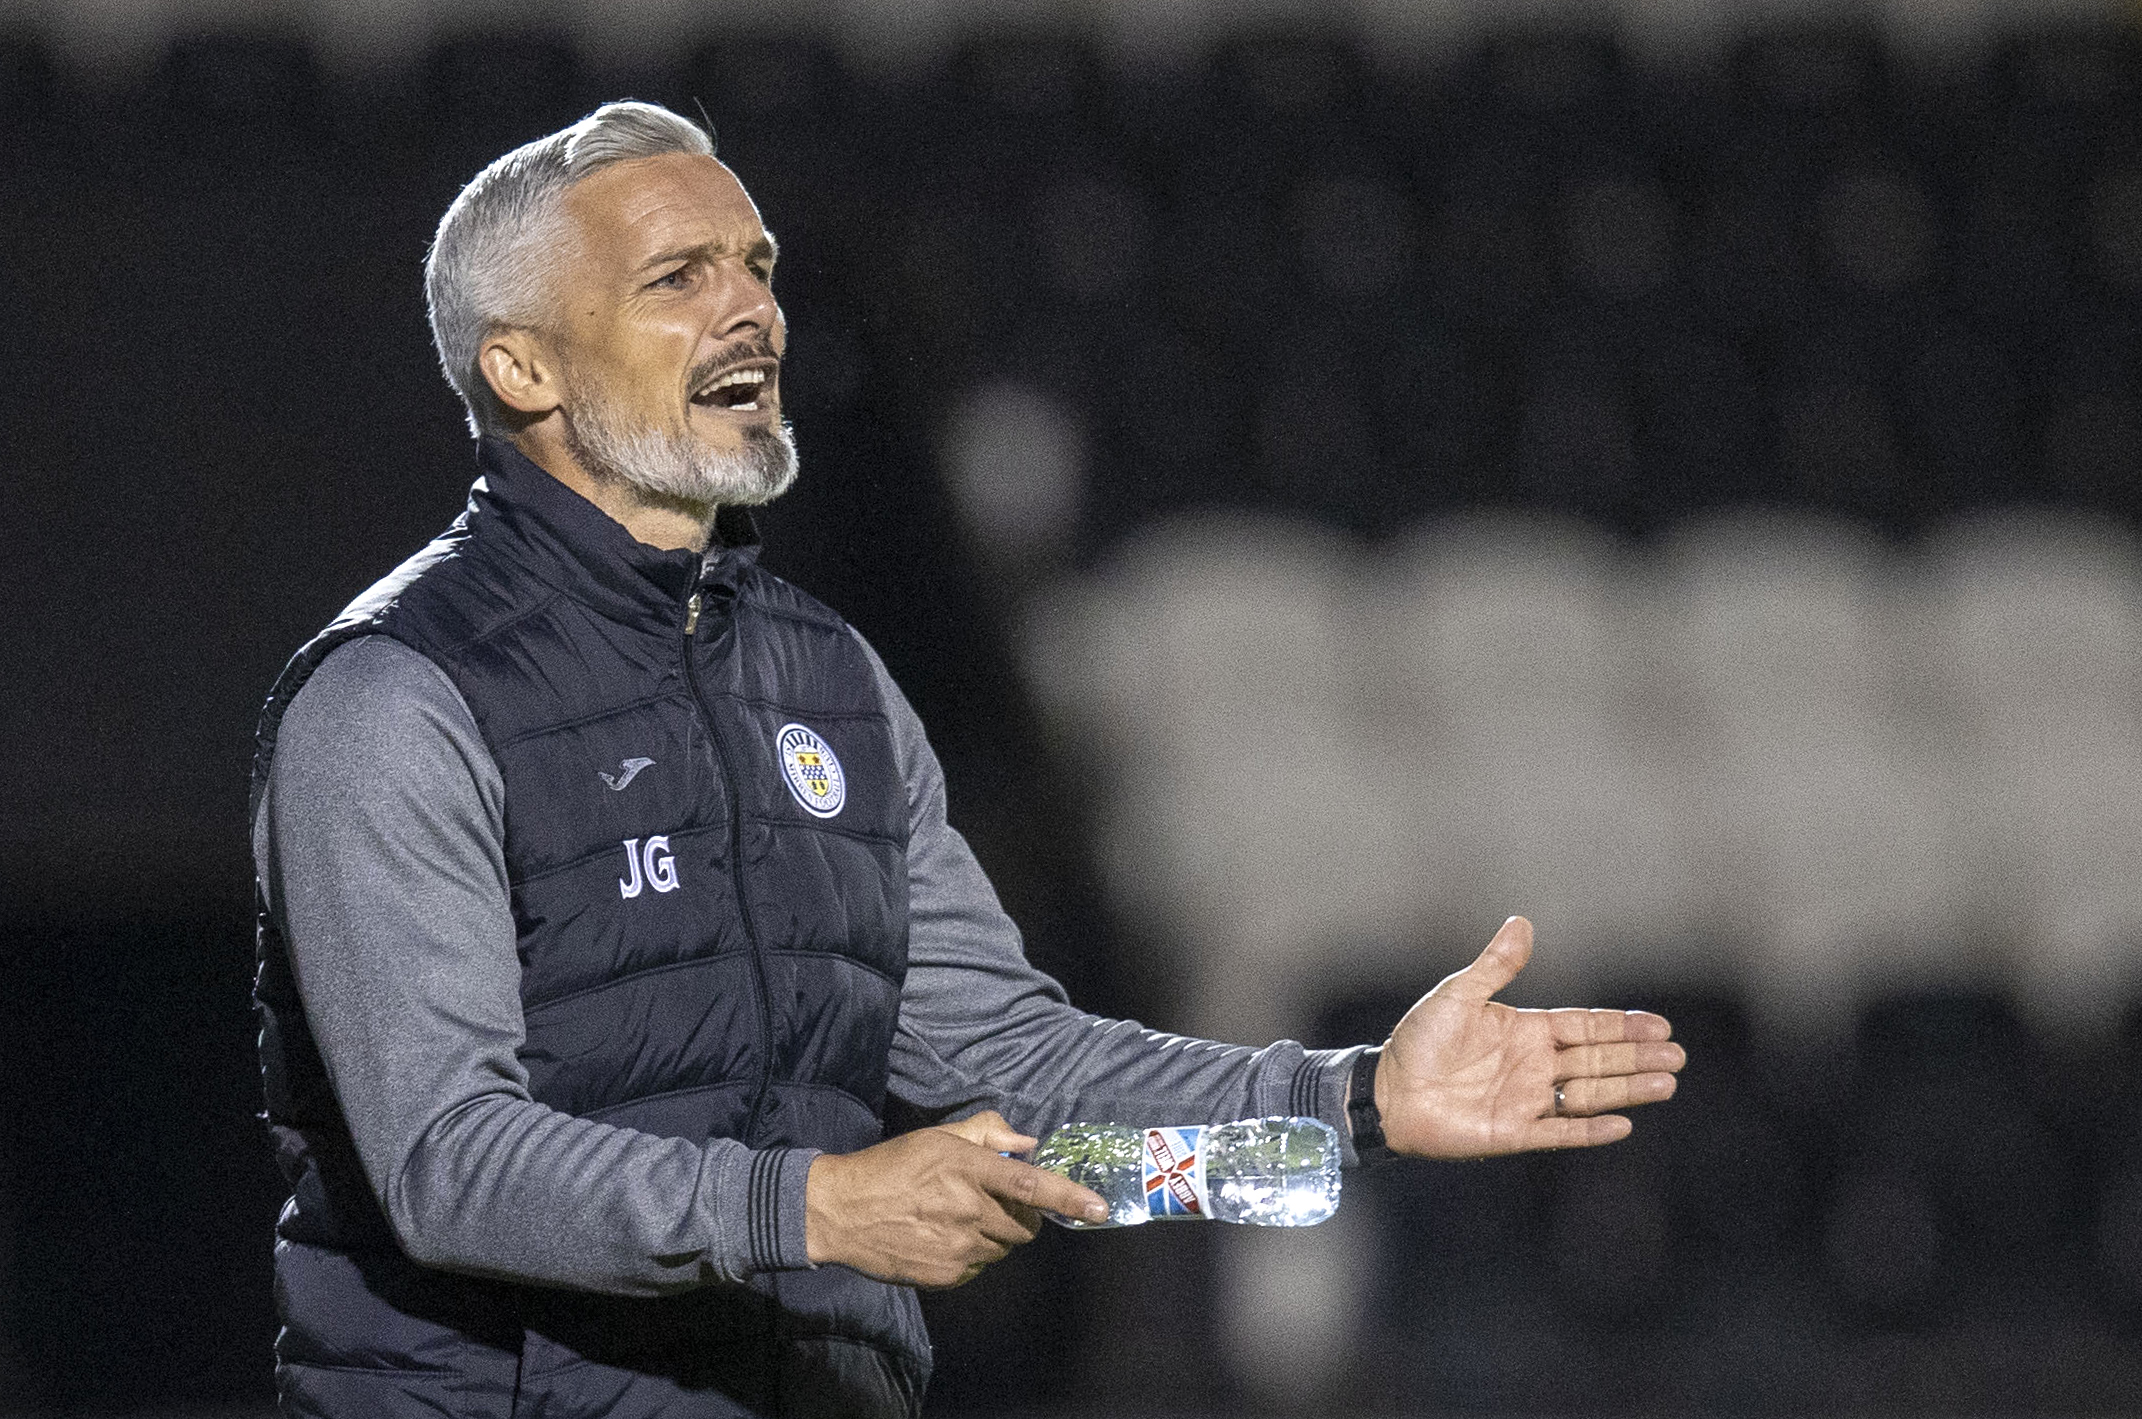 St Mirren boss Jim Goodwin 'absolutely delighted' with capture of Eamonn Brophy